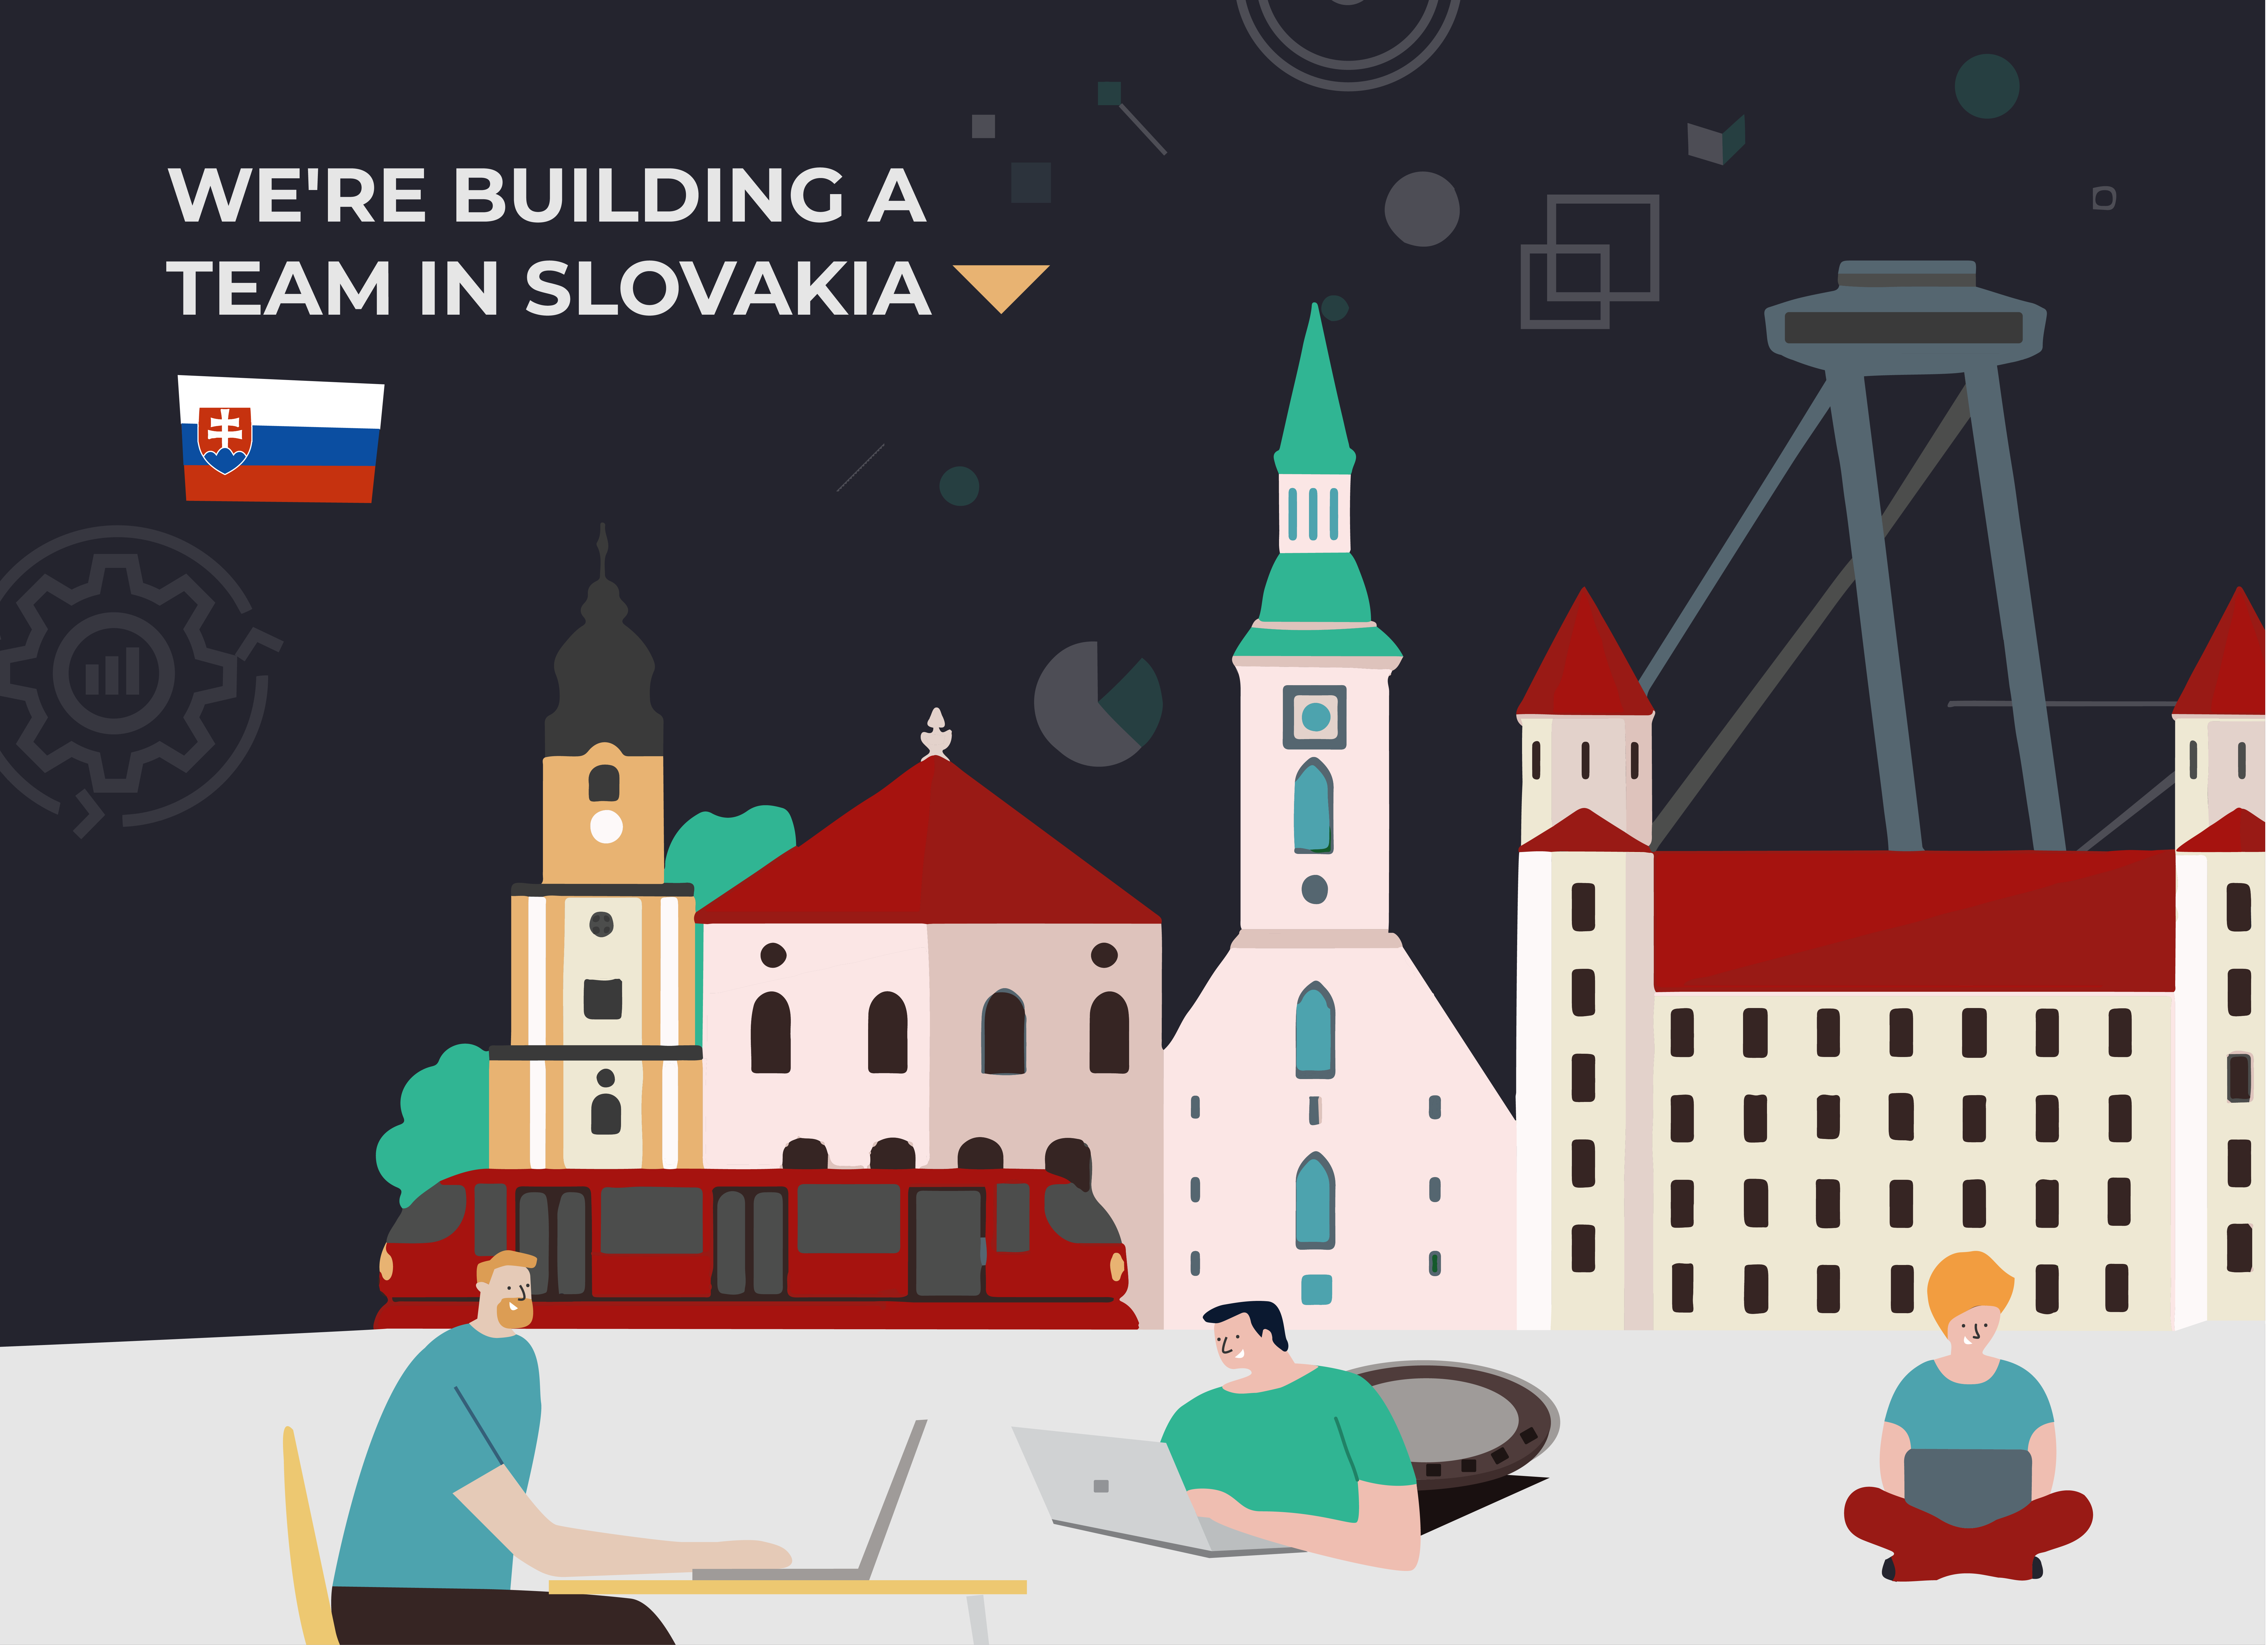 Infinite Lambda is building a team in Slovakia